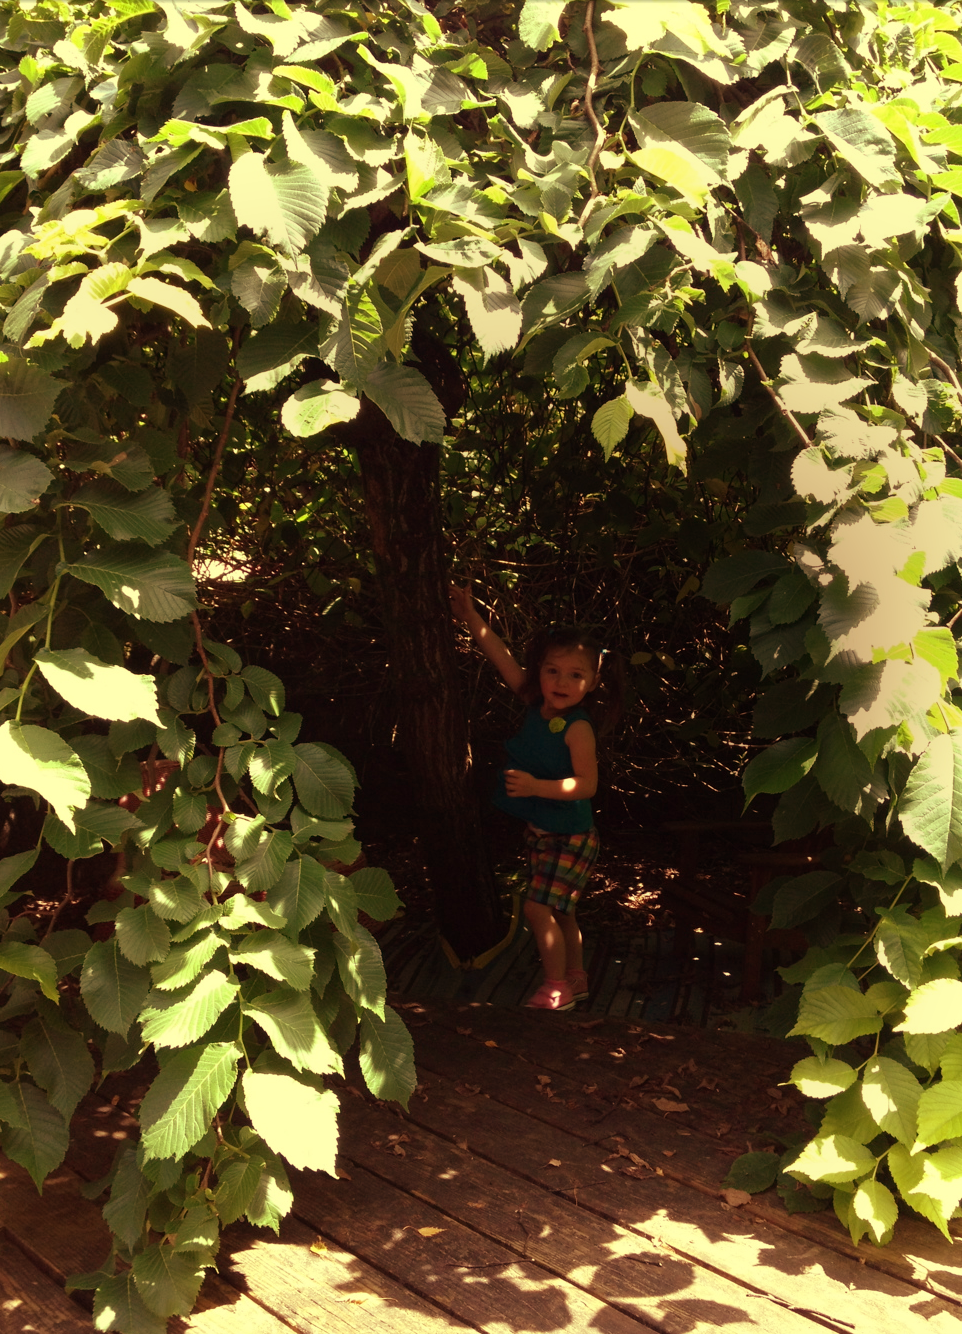 My adorable niece, exploring the hidden wilds underneath the canopy.